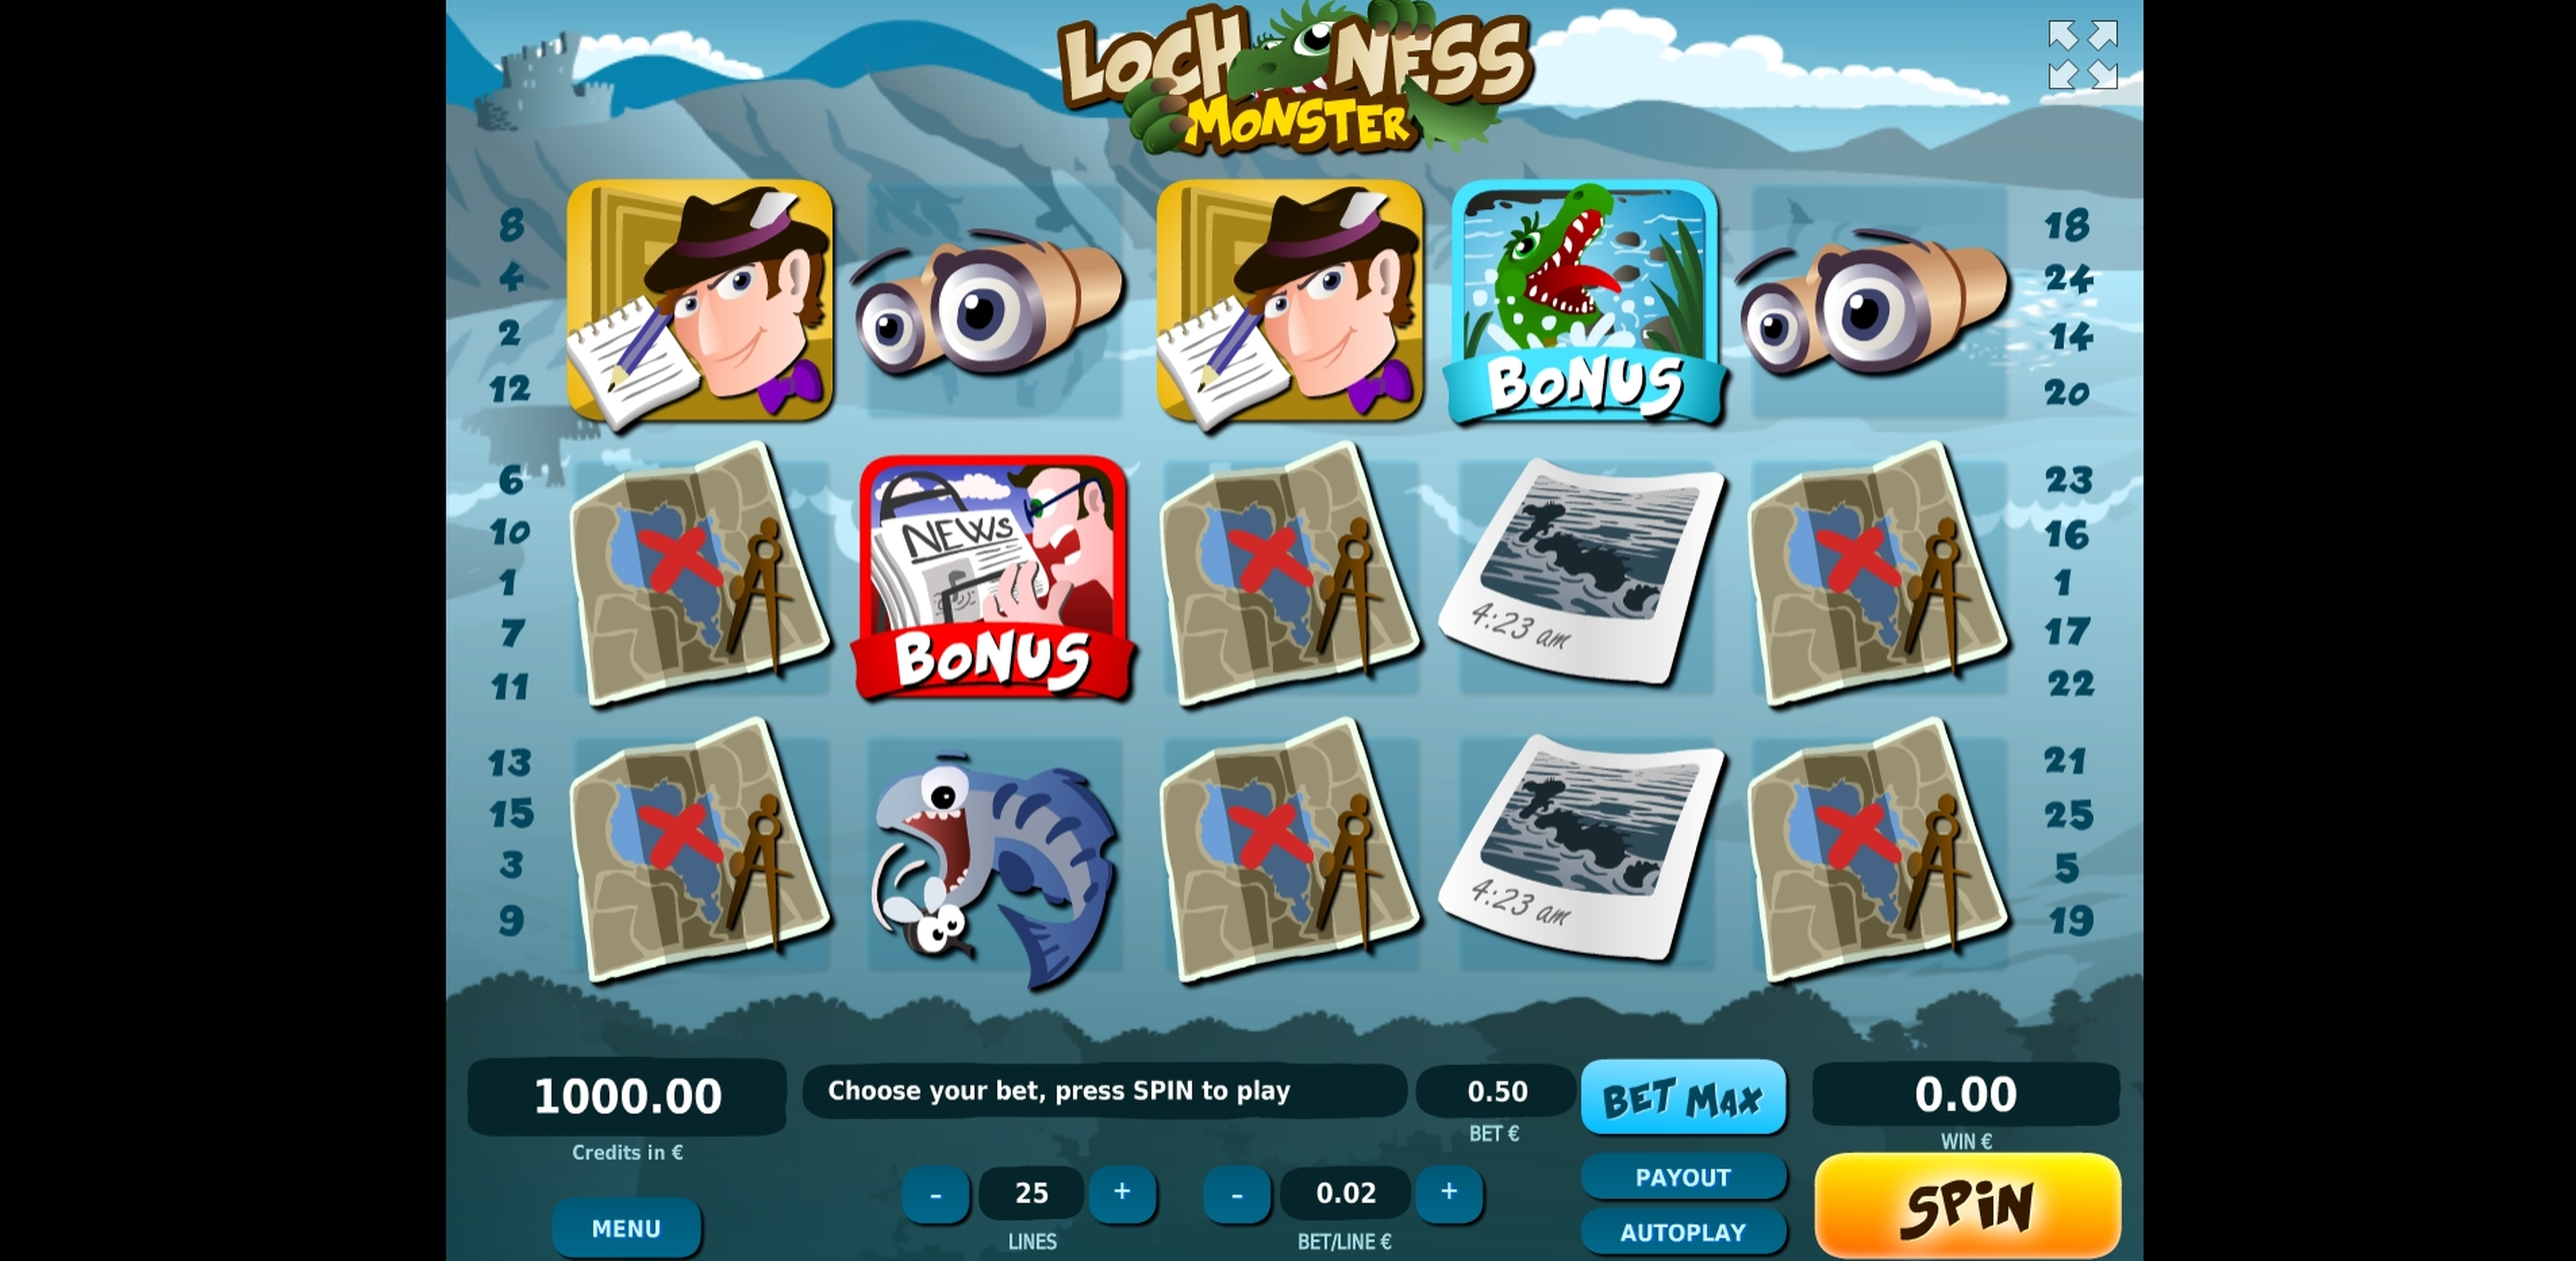 Reels in Loch Ness Monster Slot Game by Tom Horn Gaming